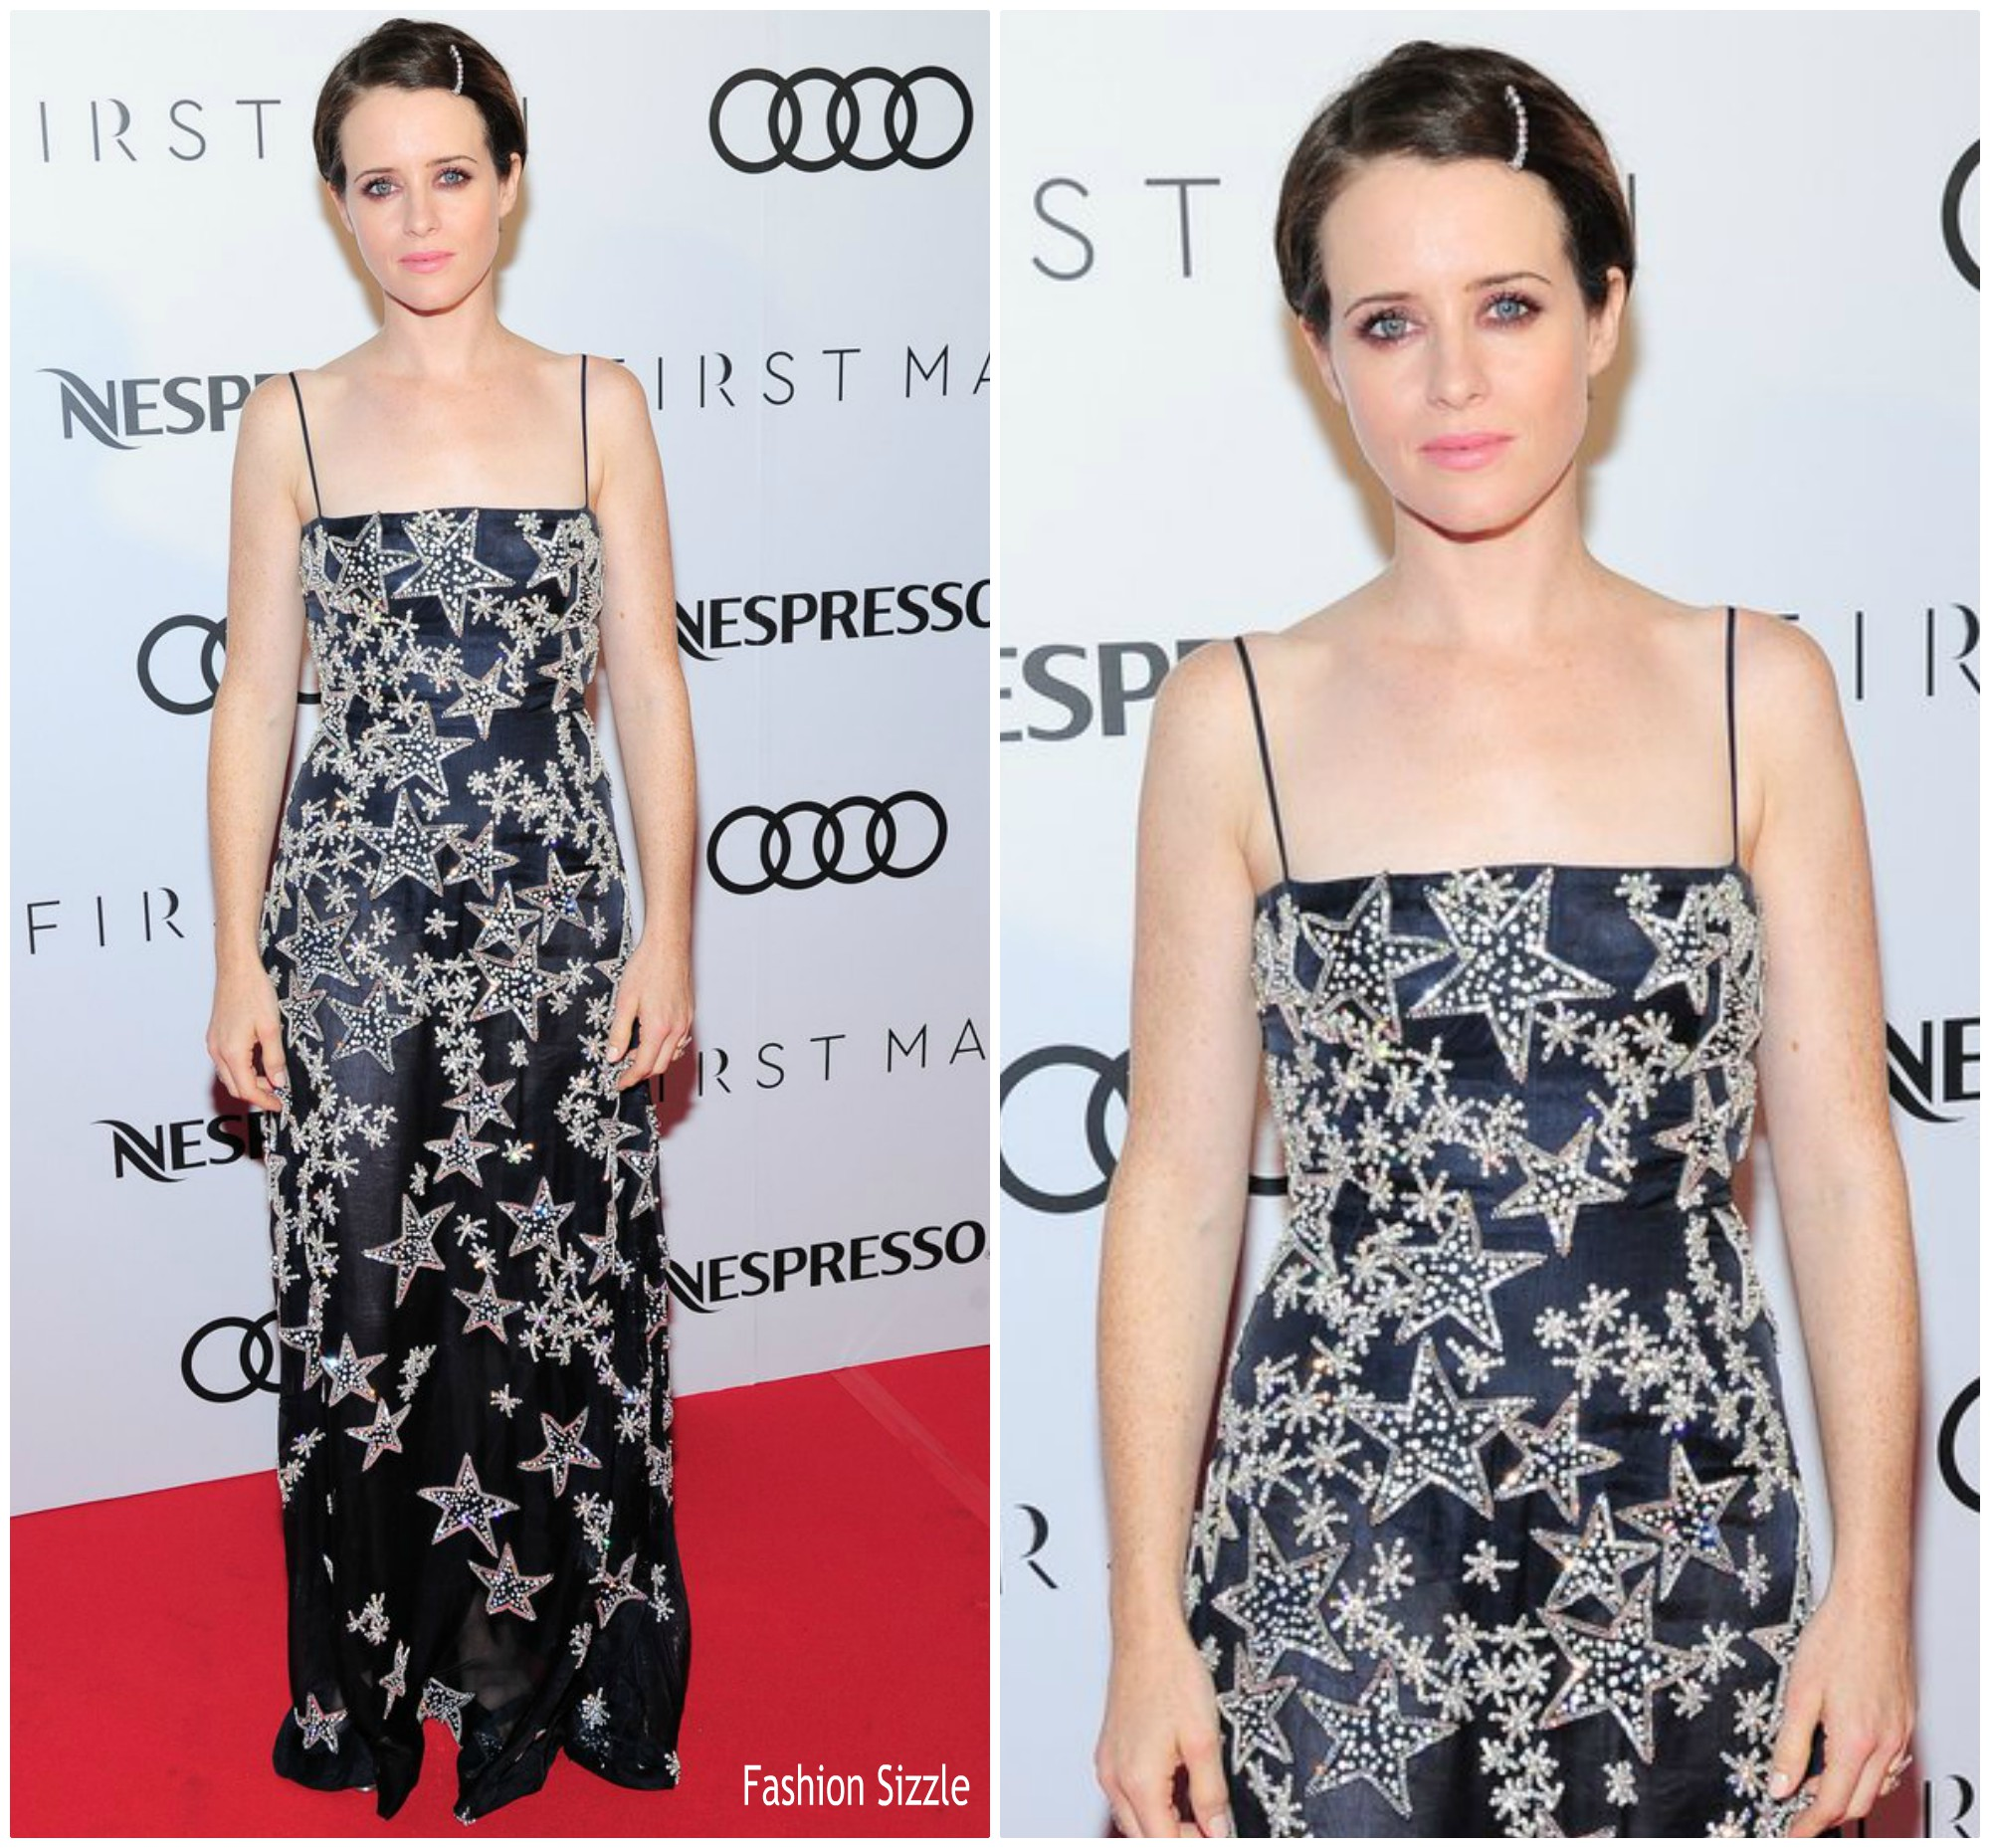 claire-foy-in-miu-miu-firstman-toronto-international-film–festival-premiere